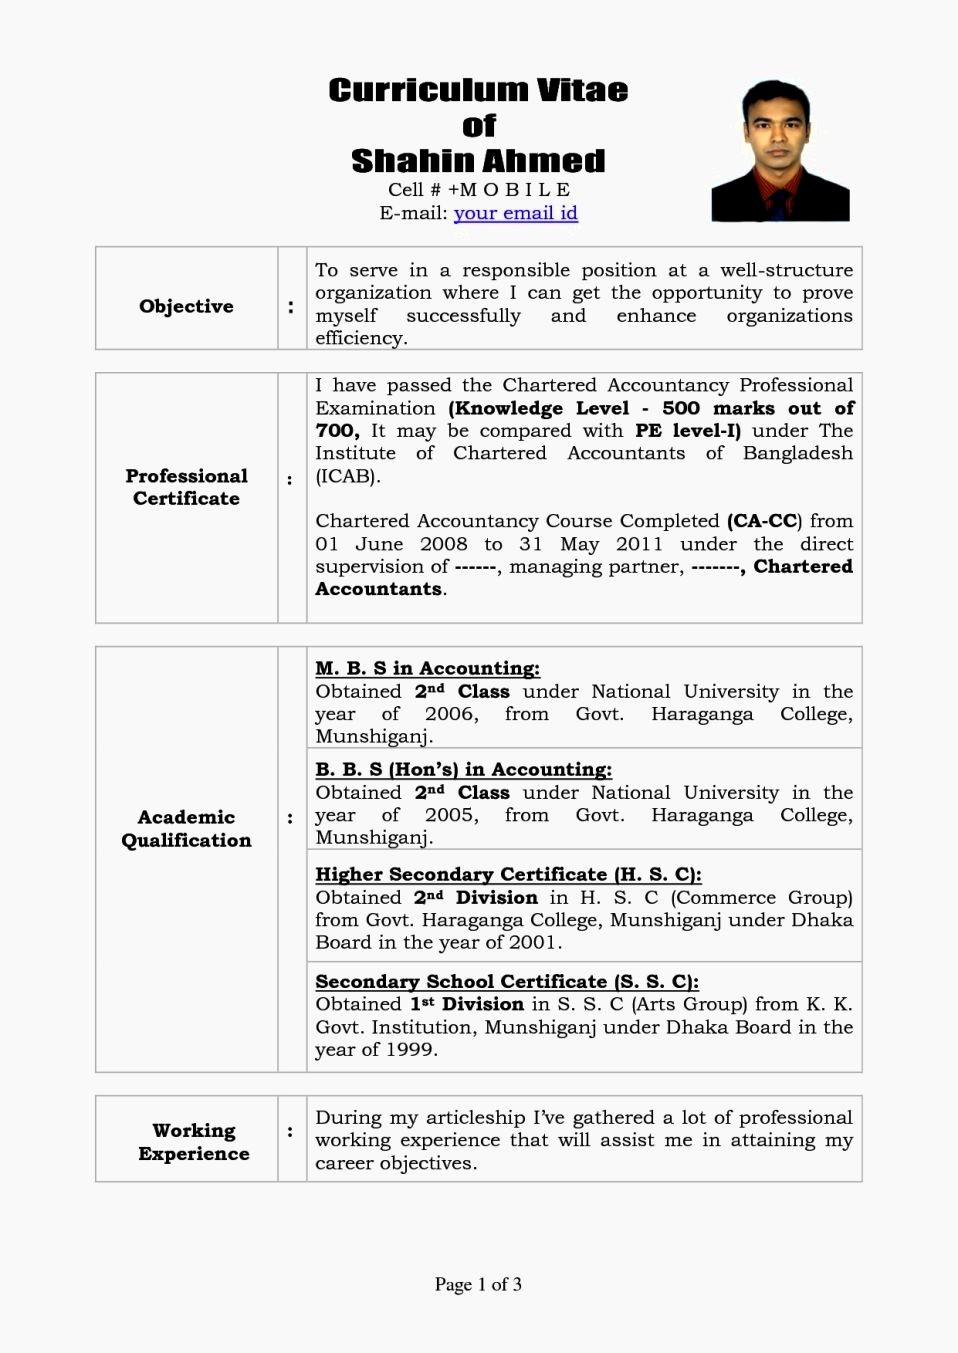 Sample Of Curriculum Vitae format Luxury Personal Cv format Bd Doc Resume Template